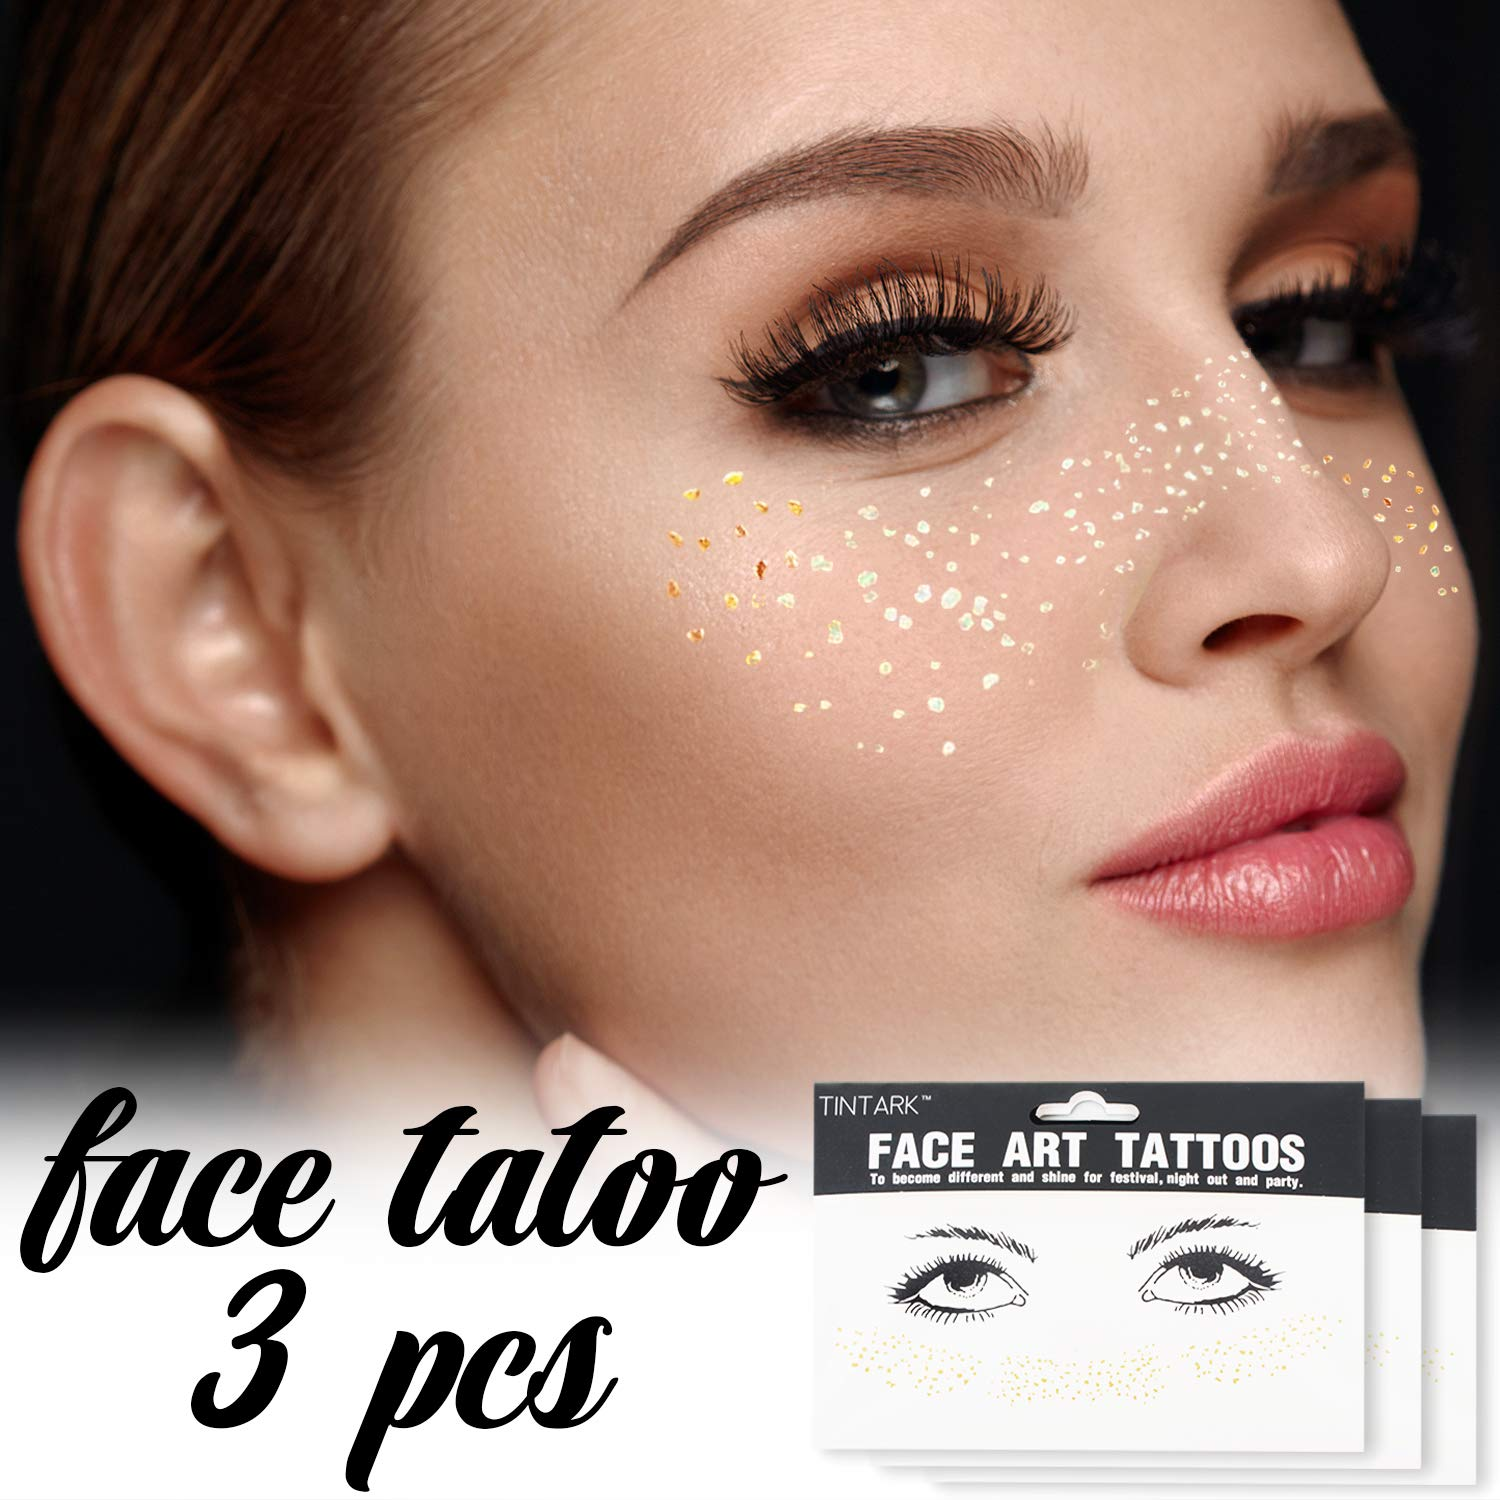 Hatcher lee 3Sheets Face Tattoo Sticker Metallic Shiny Temporary Water Transfer Tattoo for Professional Make Up Dancer Costume Parties, Shows Gold Glitter (3 Sheets-001)